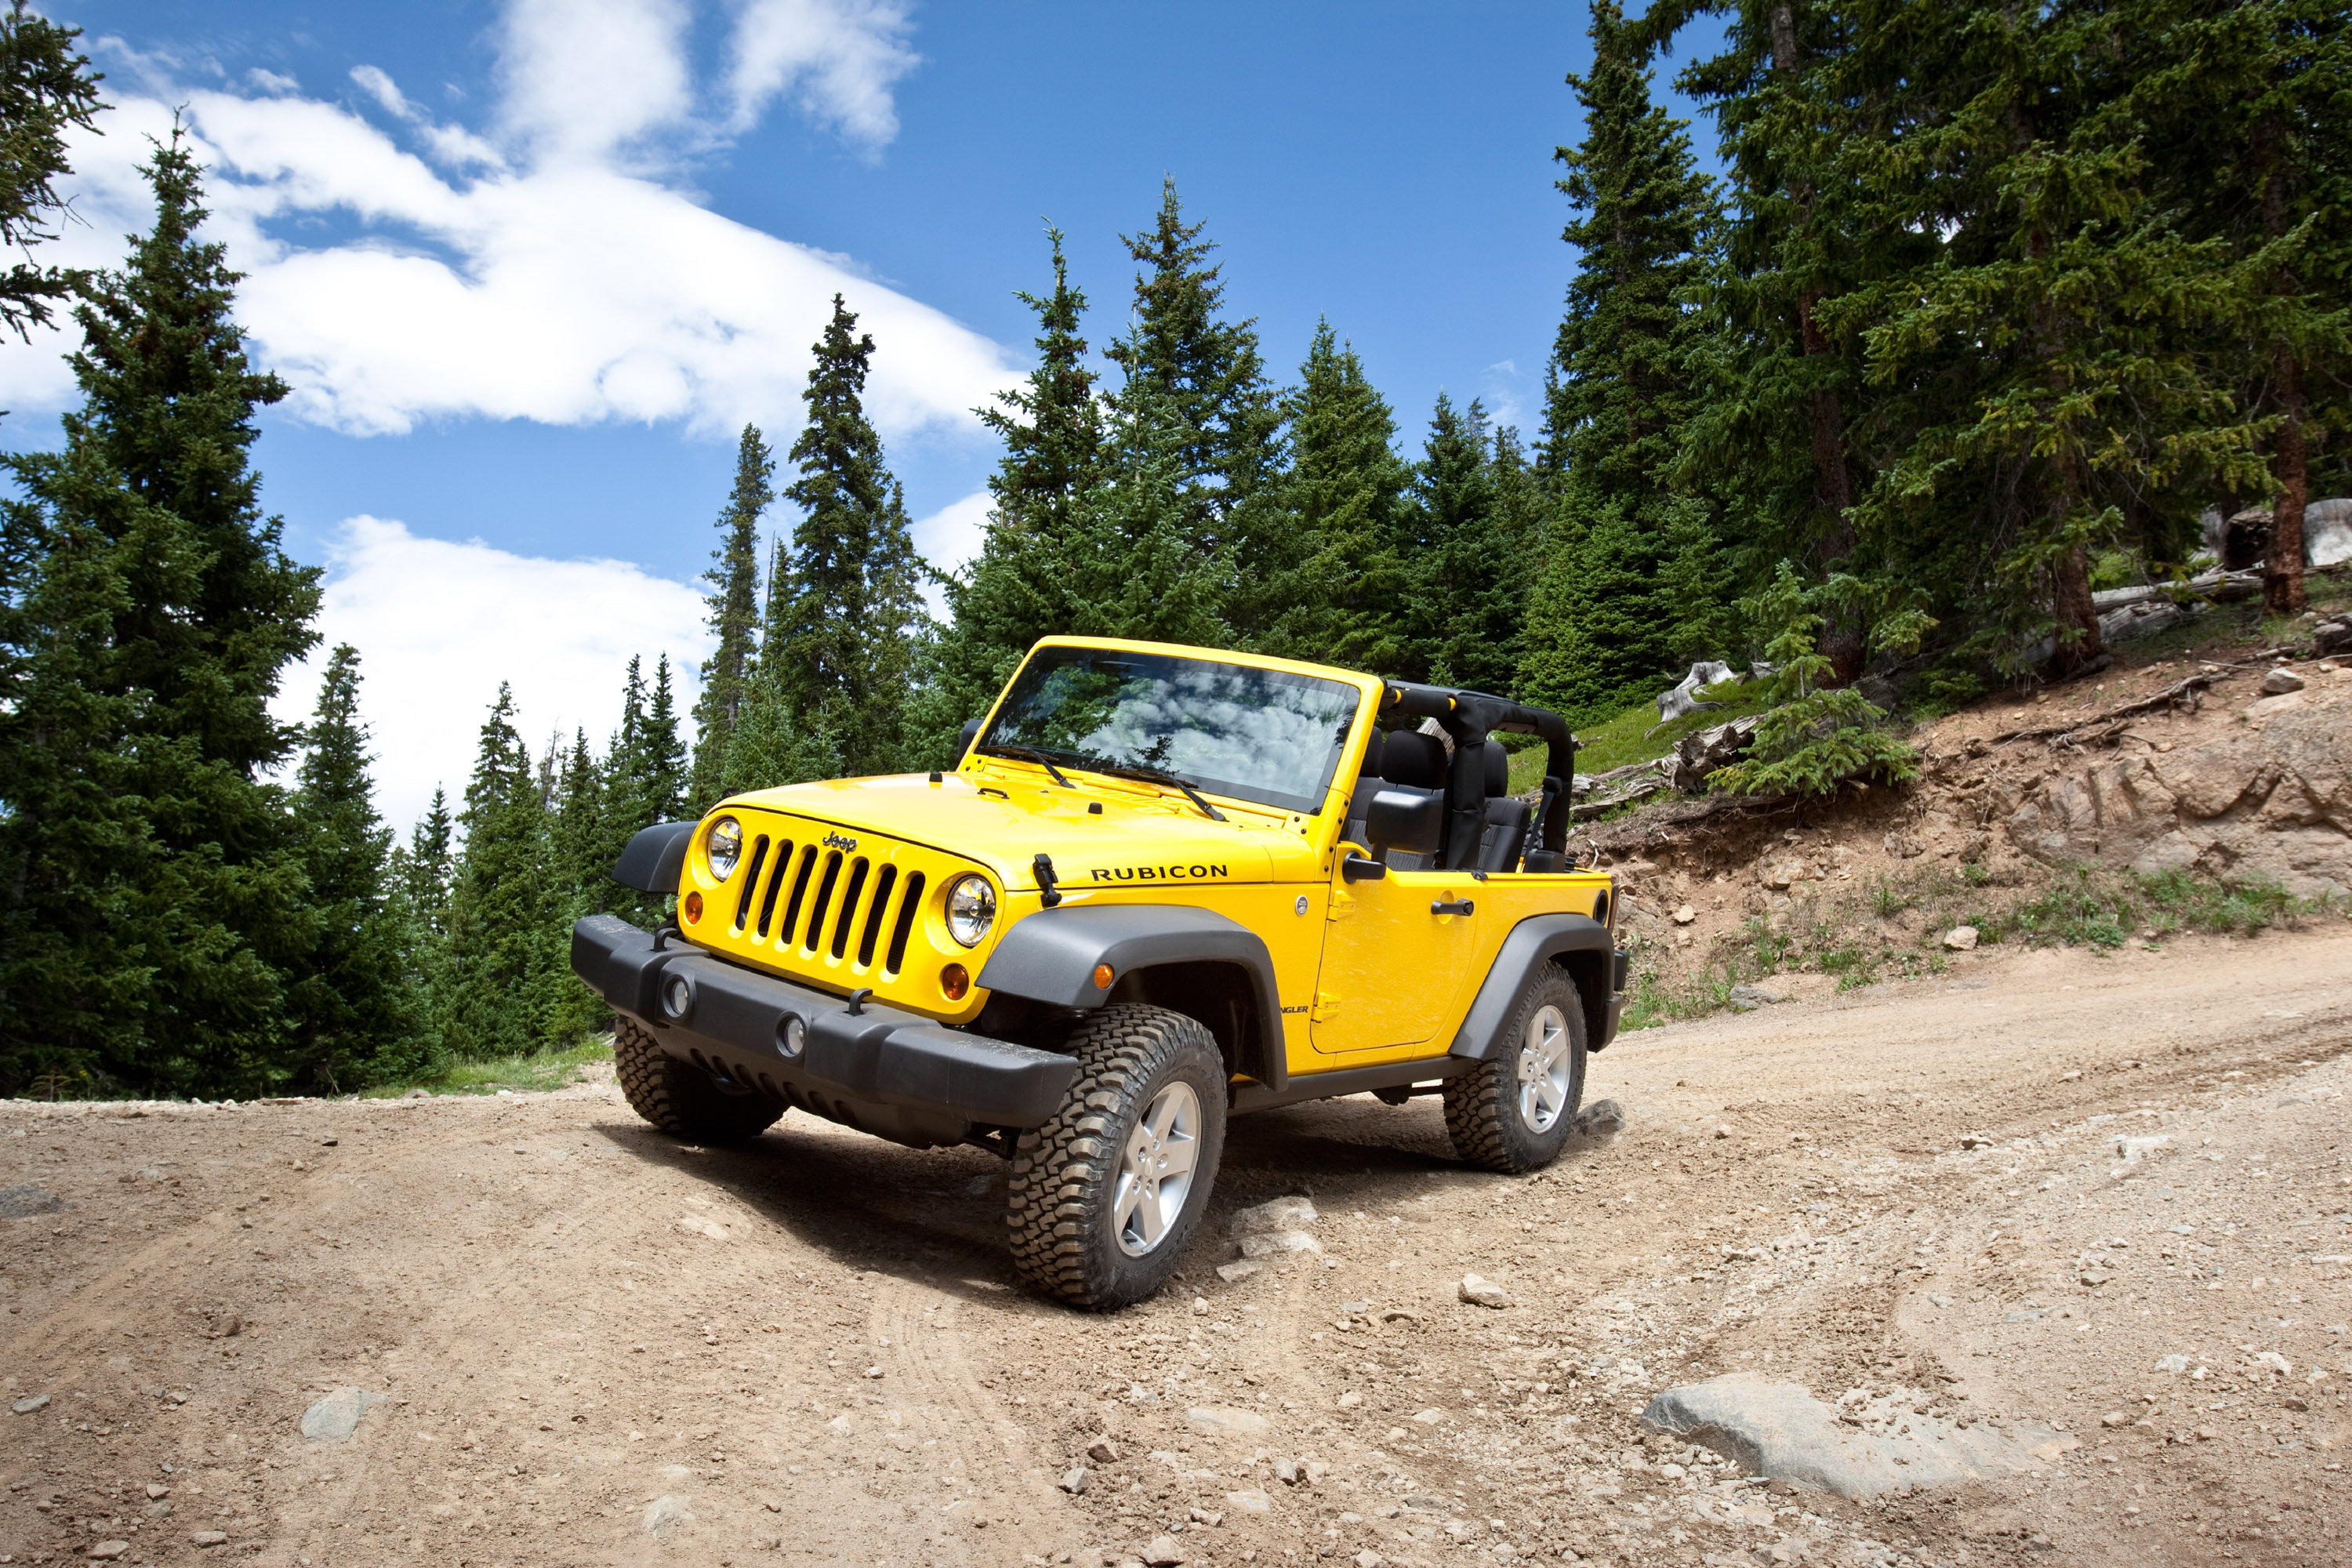 View More High-Resolution Pictures of Jeep Wrangler 2011 in Full-Page Gallery.